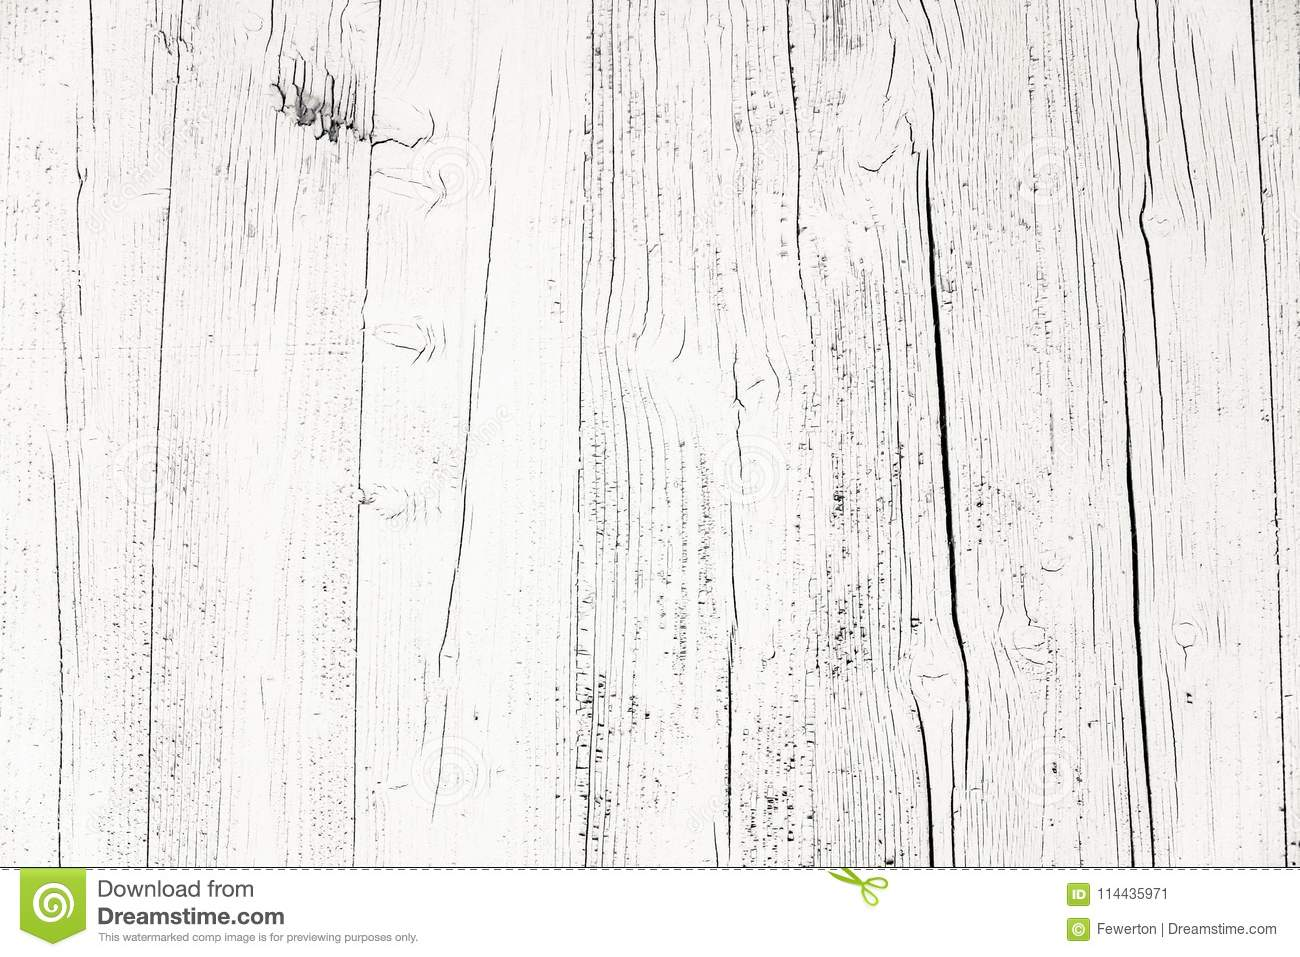 Old grungy and weathered white grey painted wooden wall plank texture background marked by long exposure to the elements